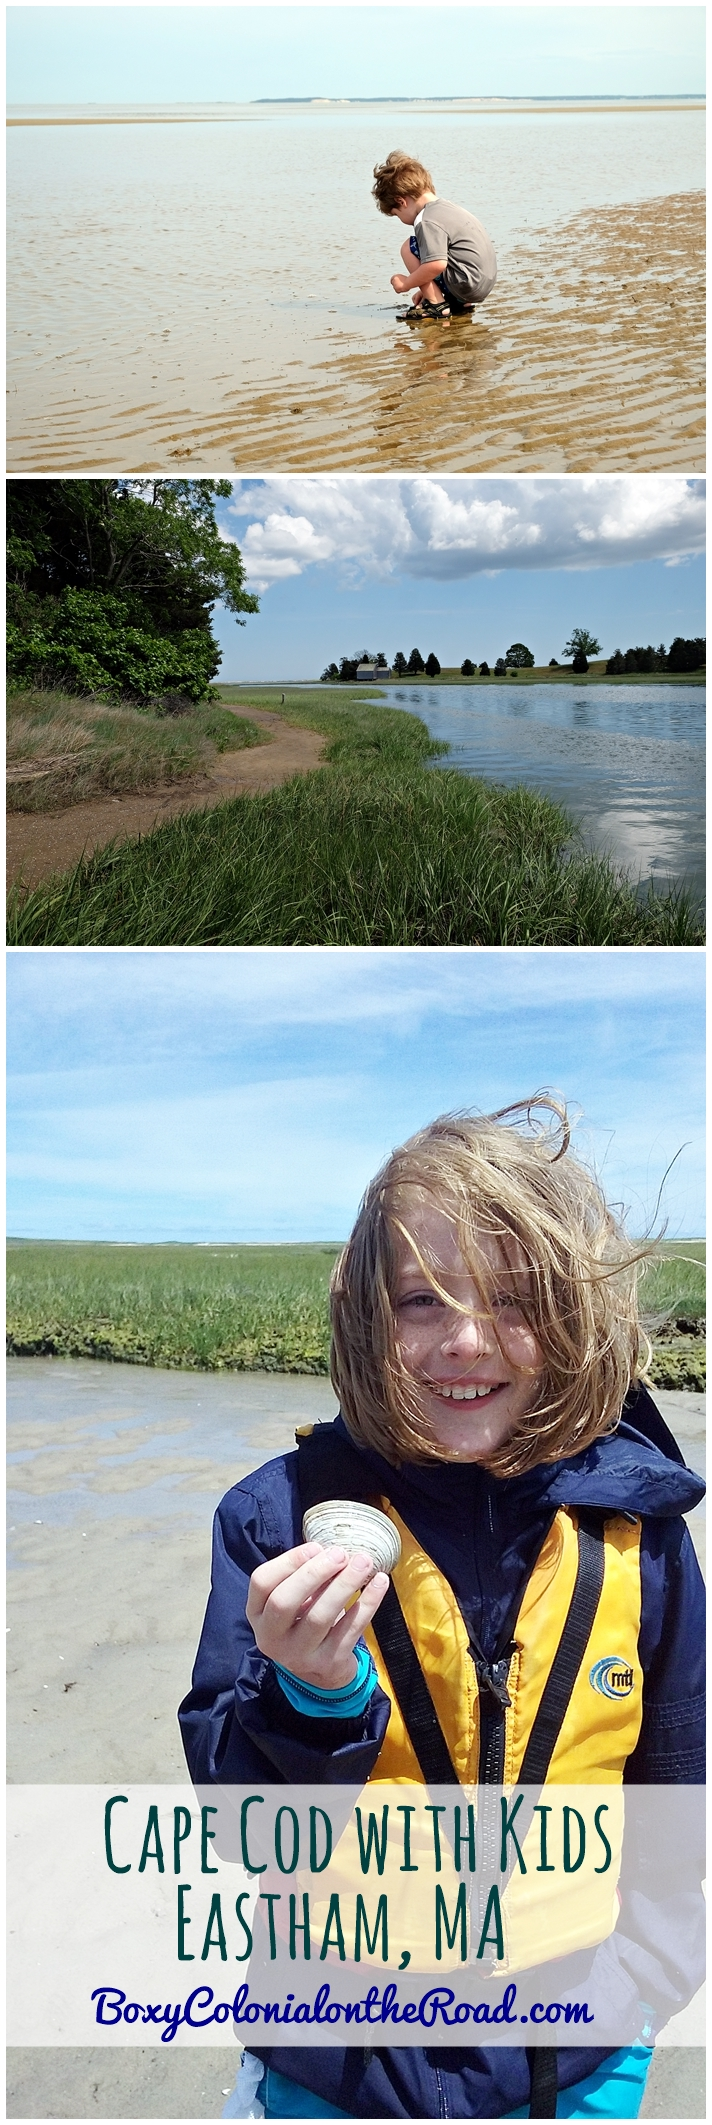 Visiting Eastham, MA on Cape Cod with kids: beaches, kayaking, National Seashore